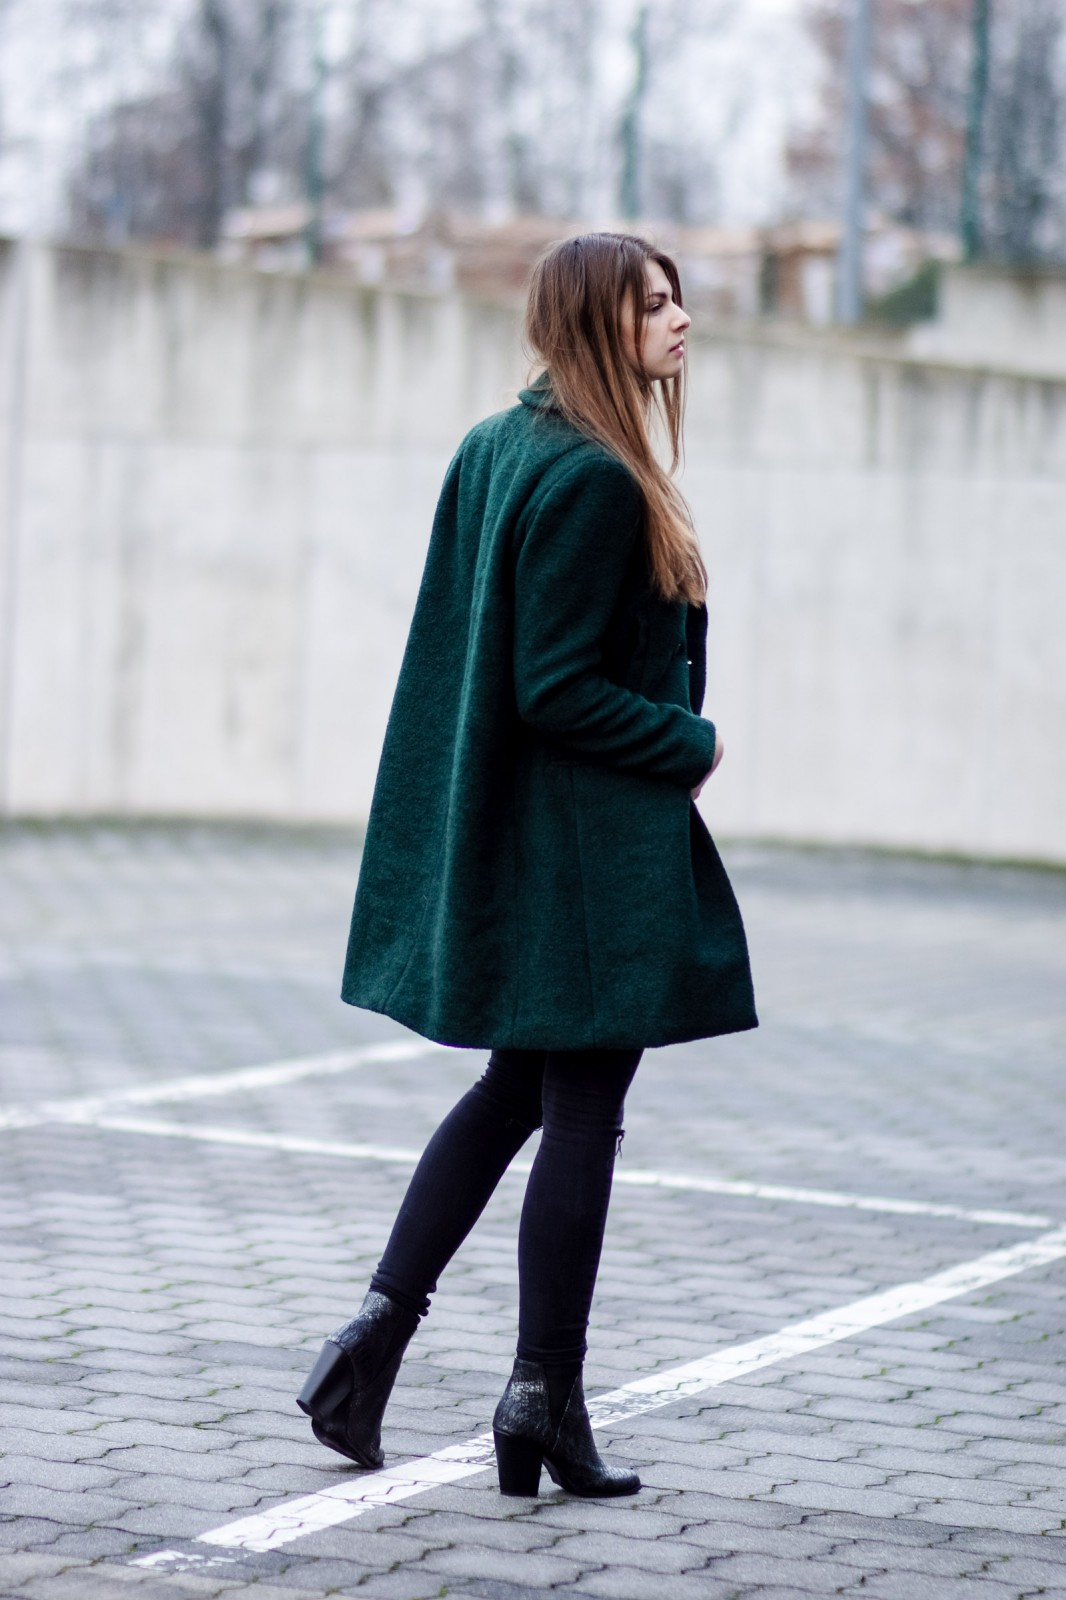 How to wear a green coat